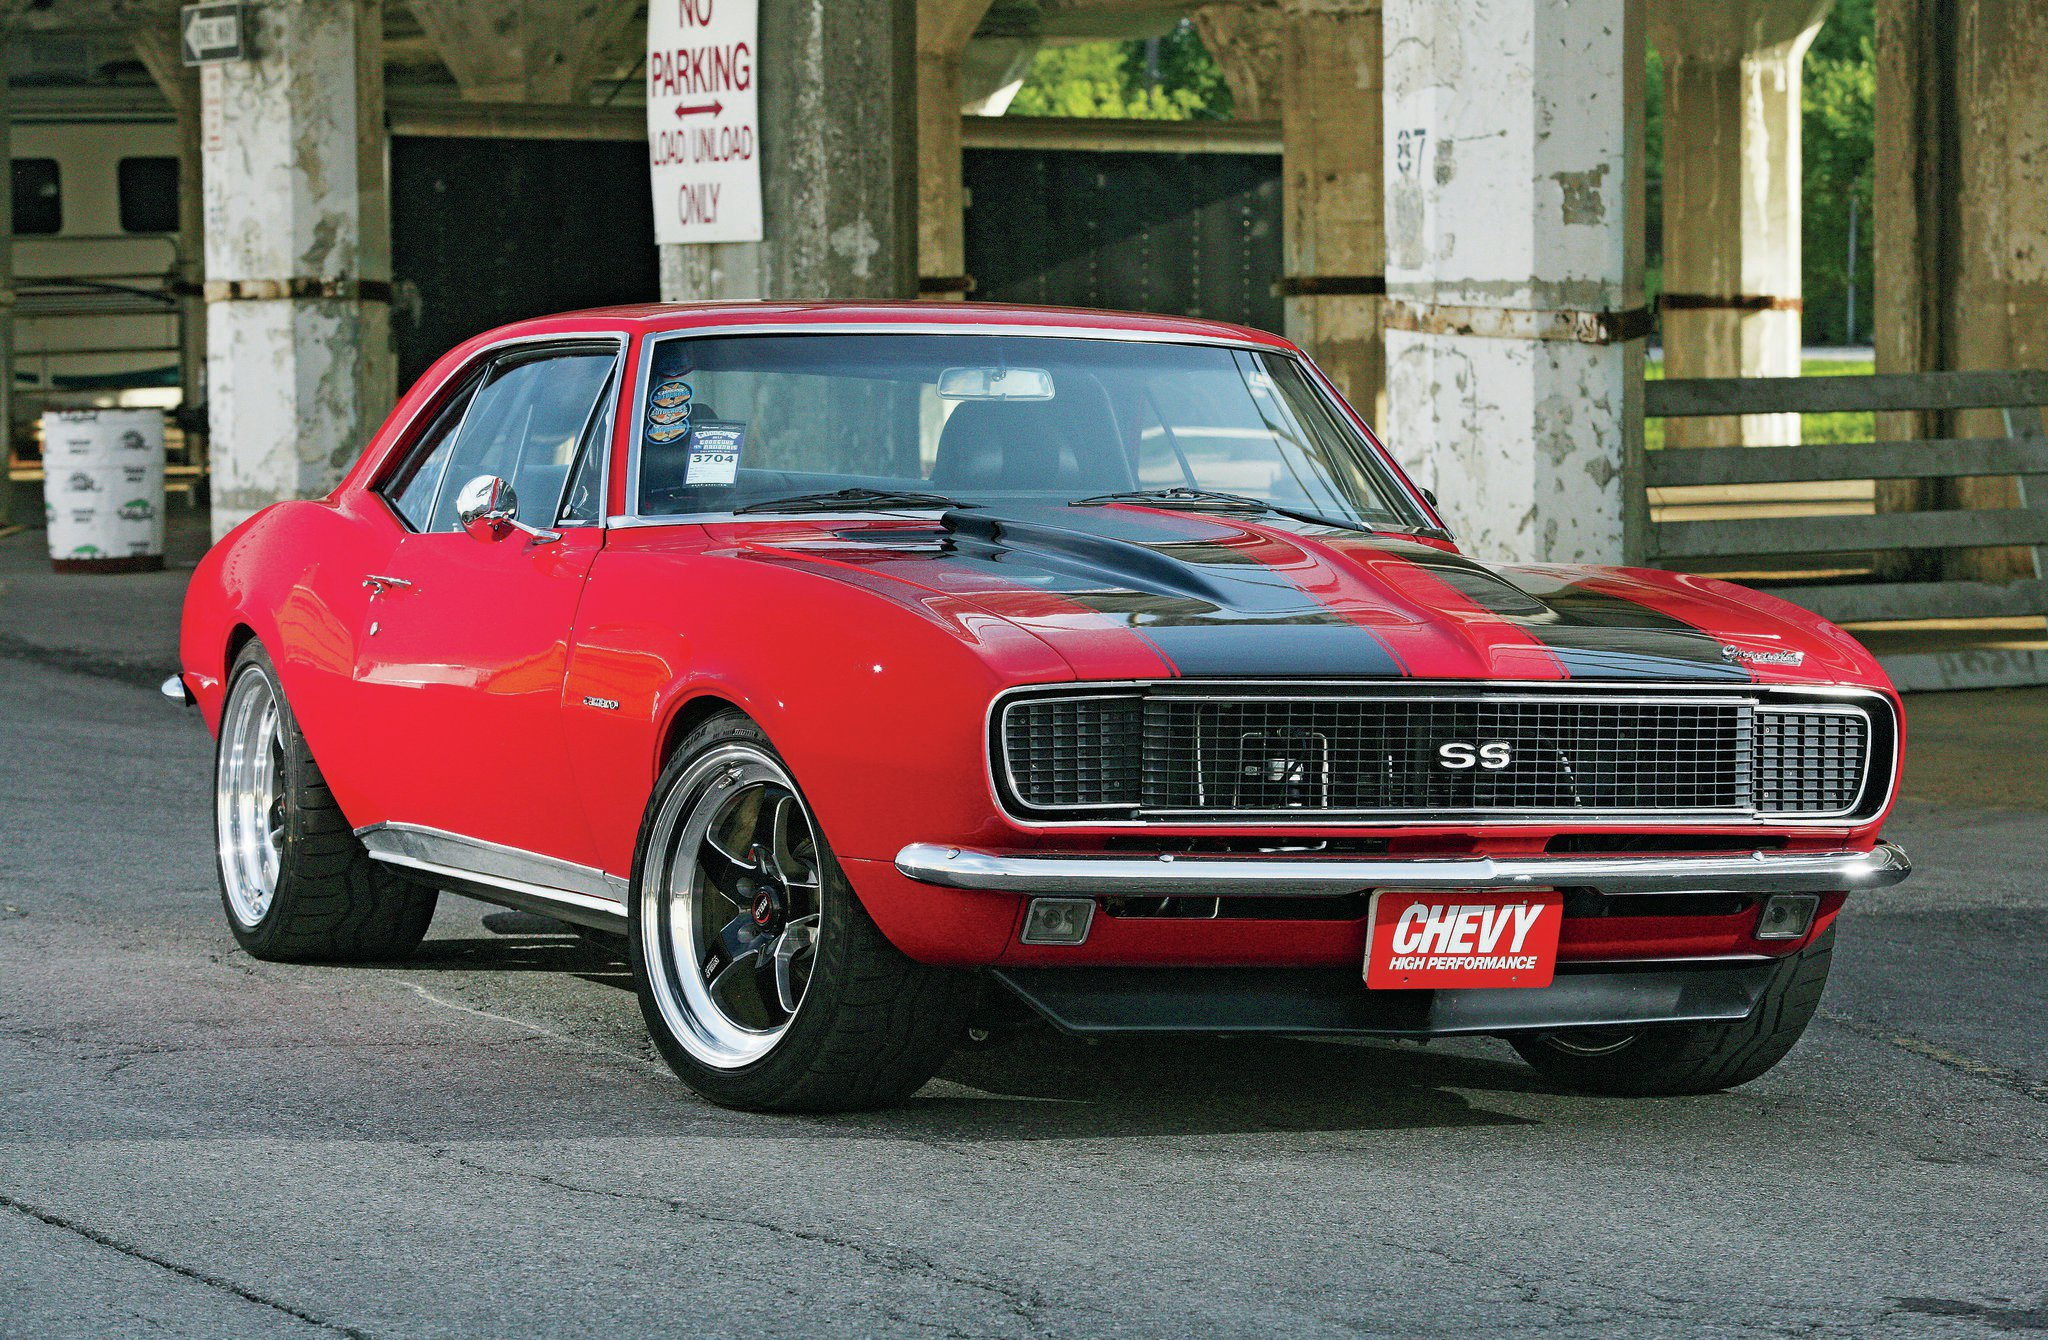 1967 Chevrolet Camaro Ss Old Red